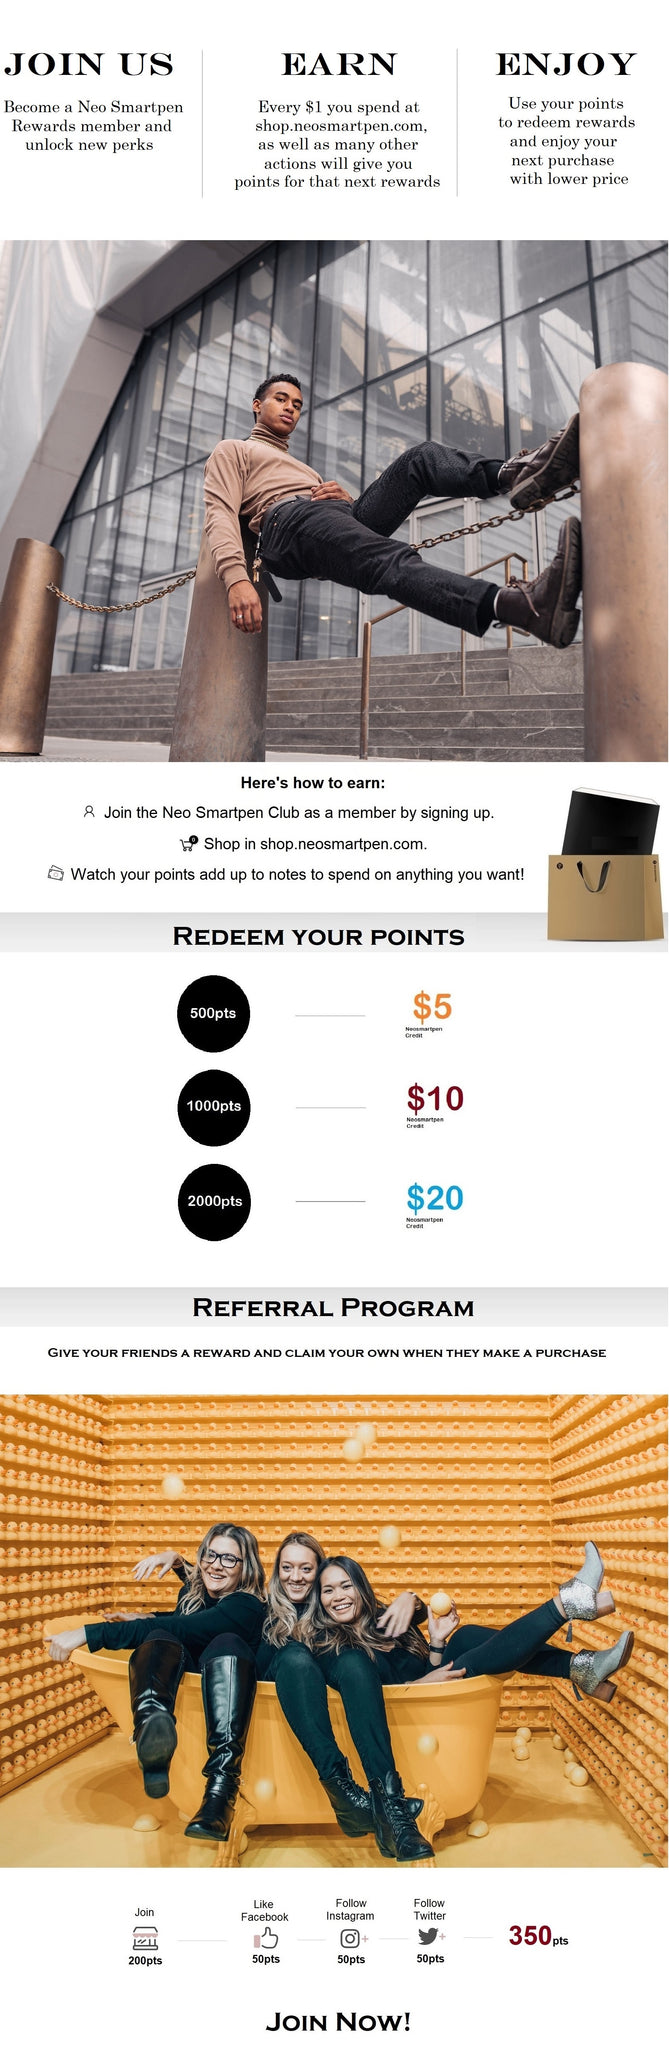 Neo Smartpen Reward Program